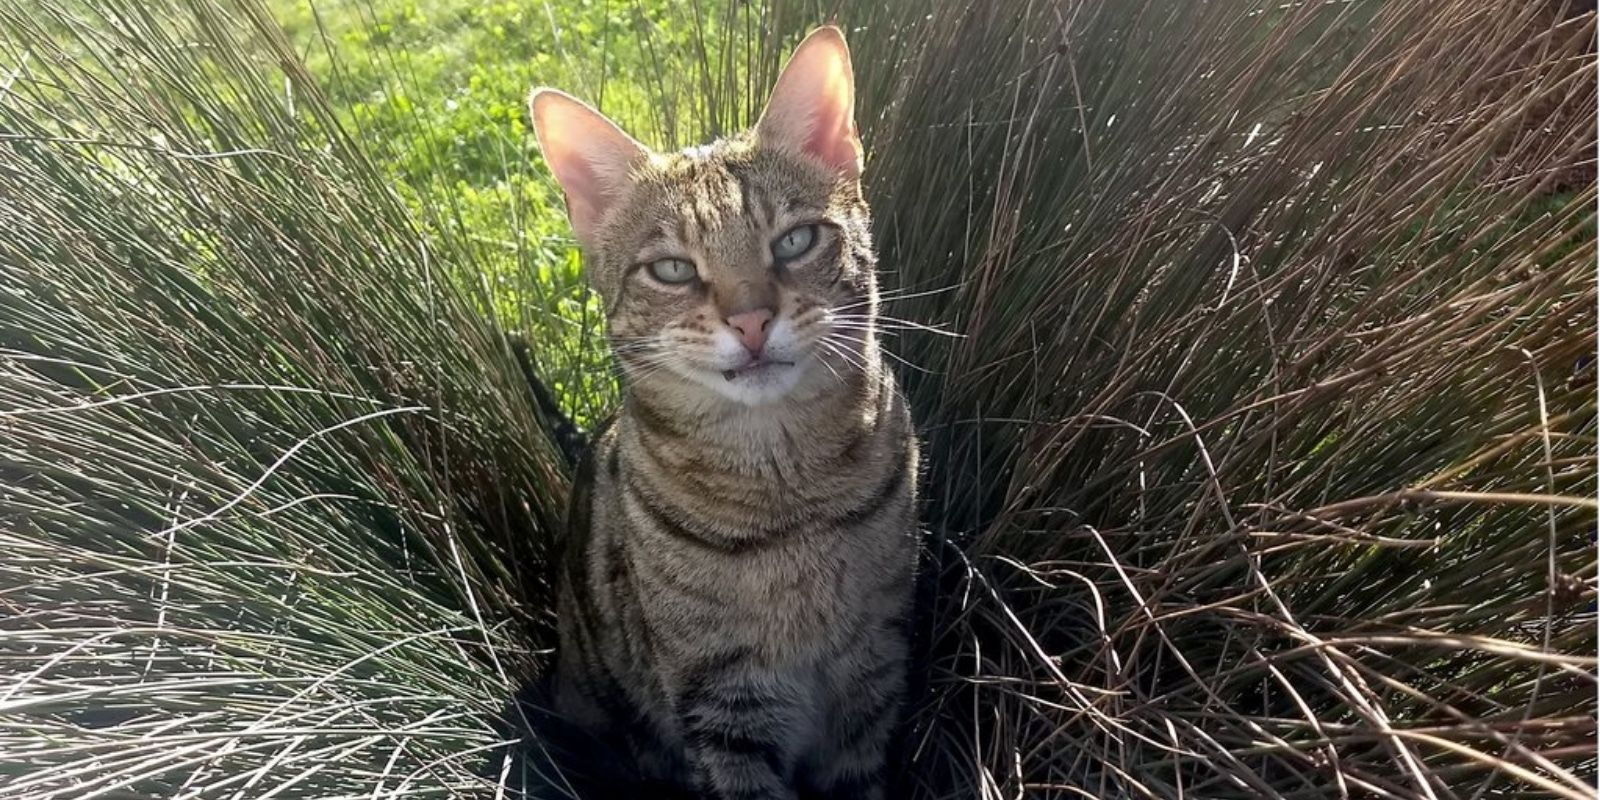 Pawshank redemption: County pursues multi-year legal action against tabby cat